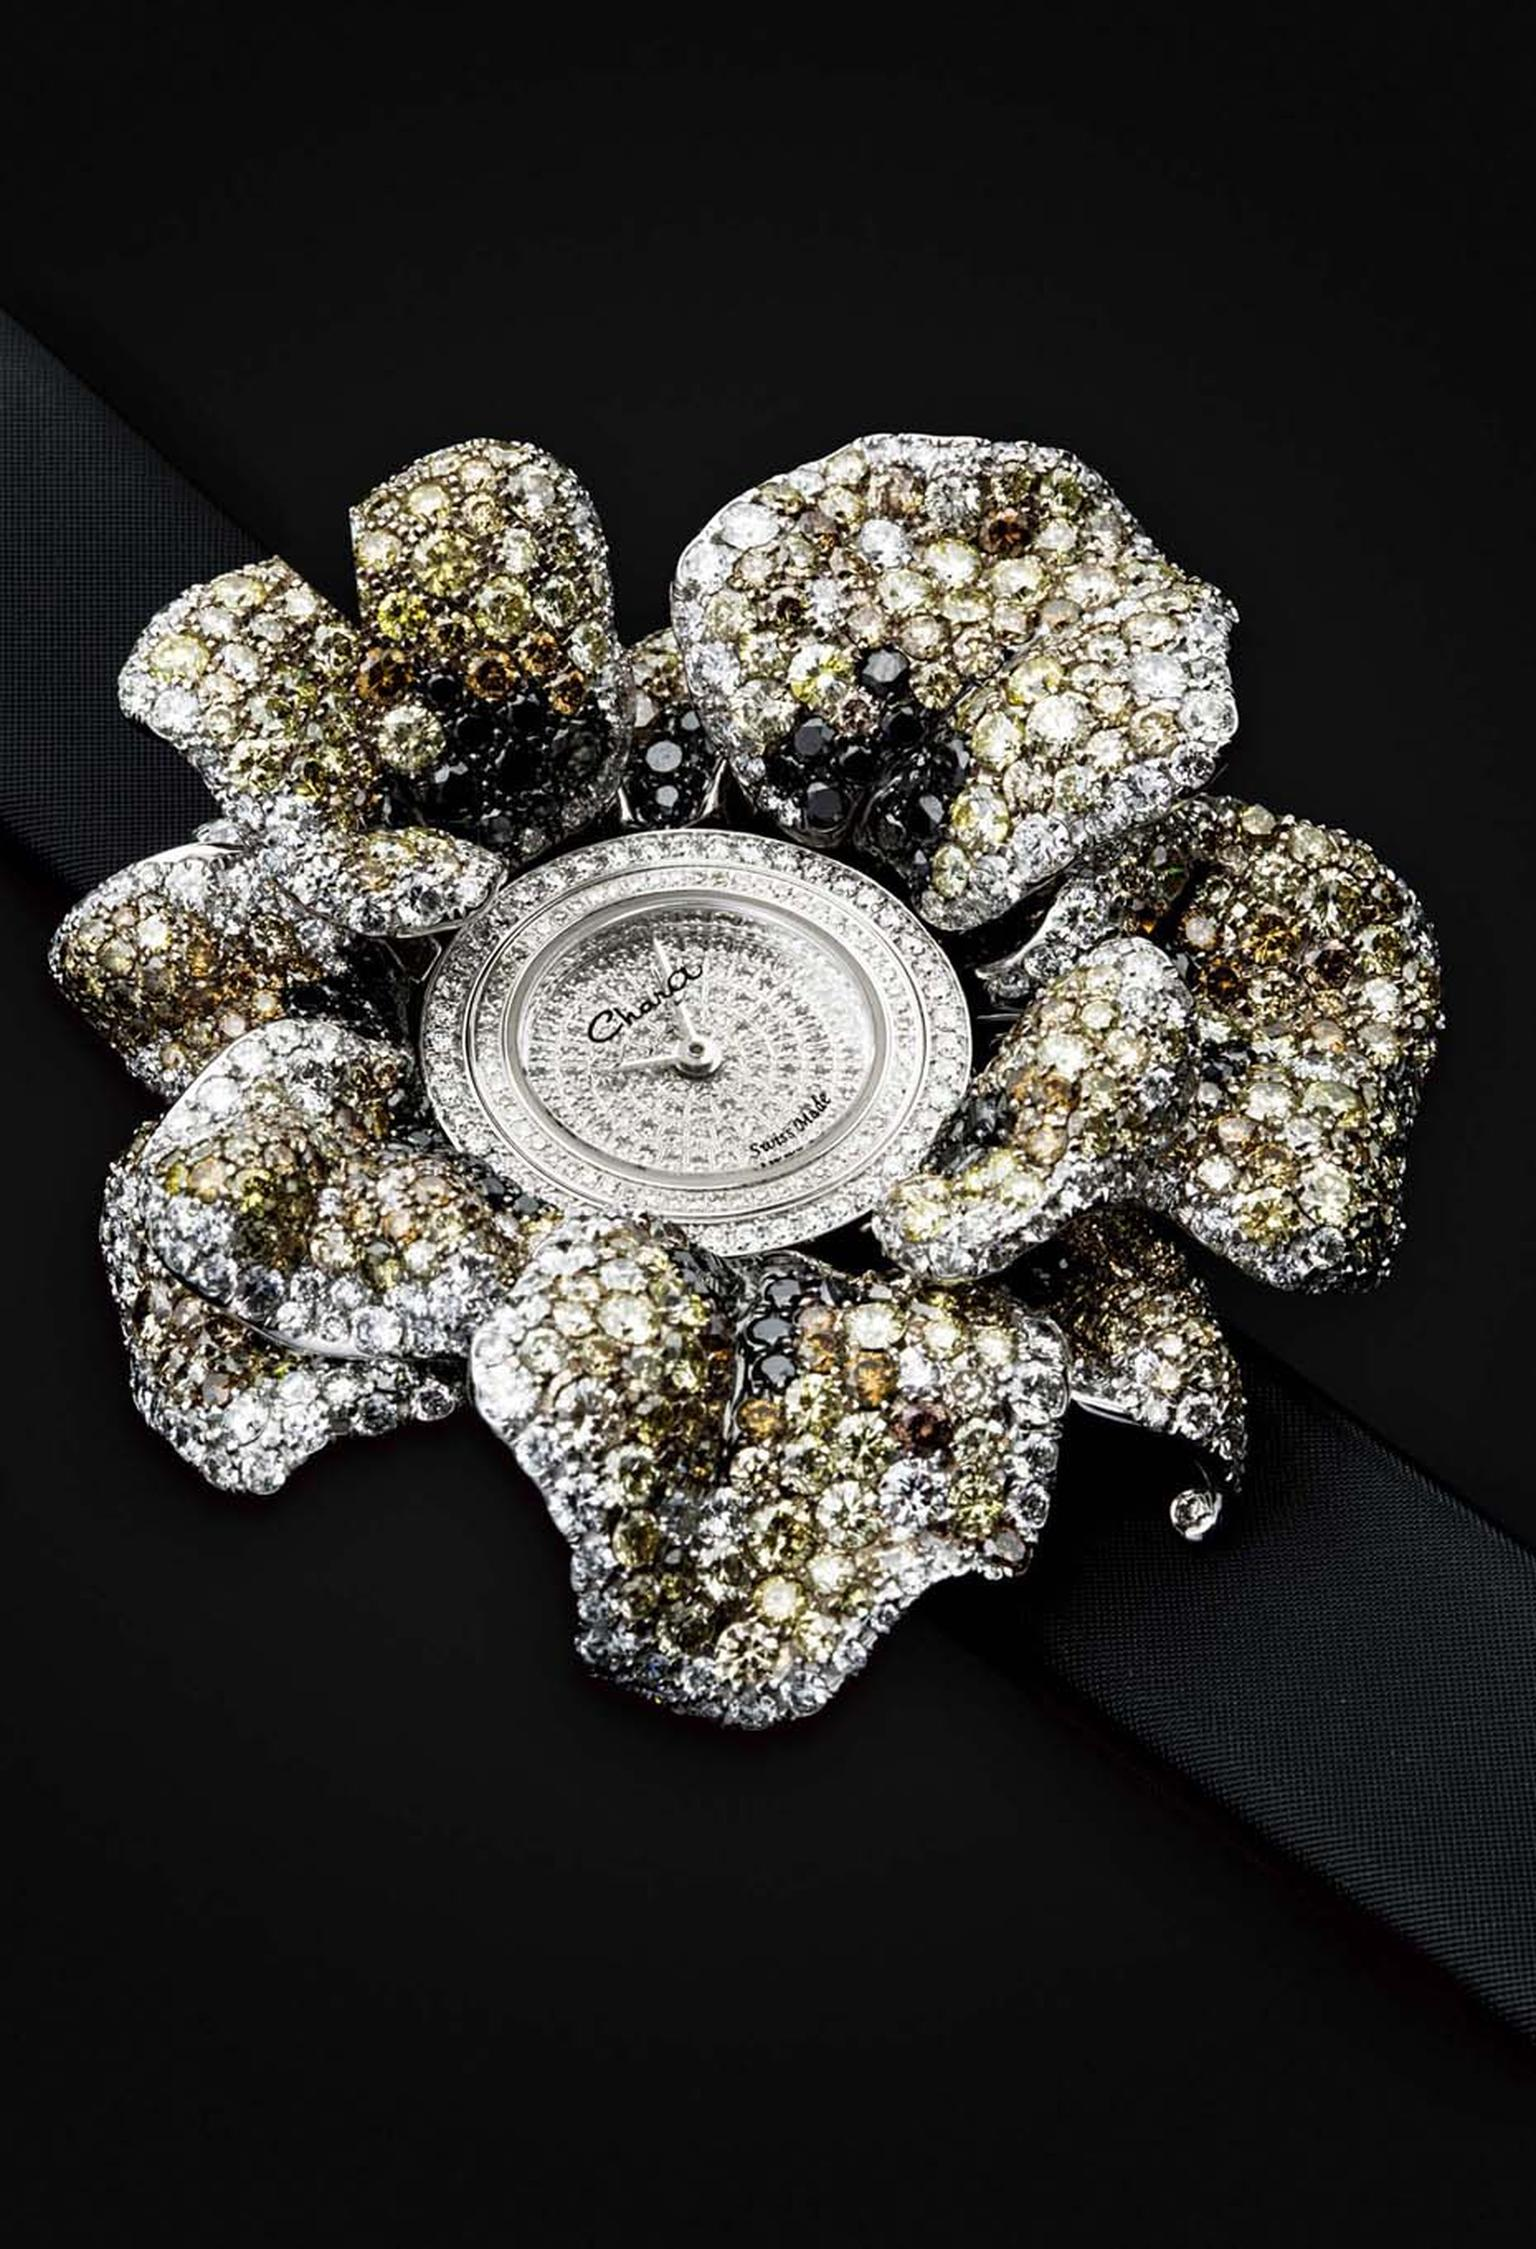 Chara Wen Life collection Flower watch featuring white, yellow and black diamonds.